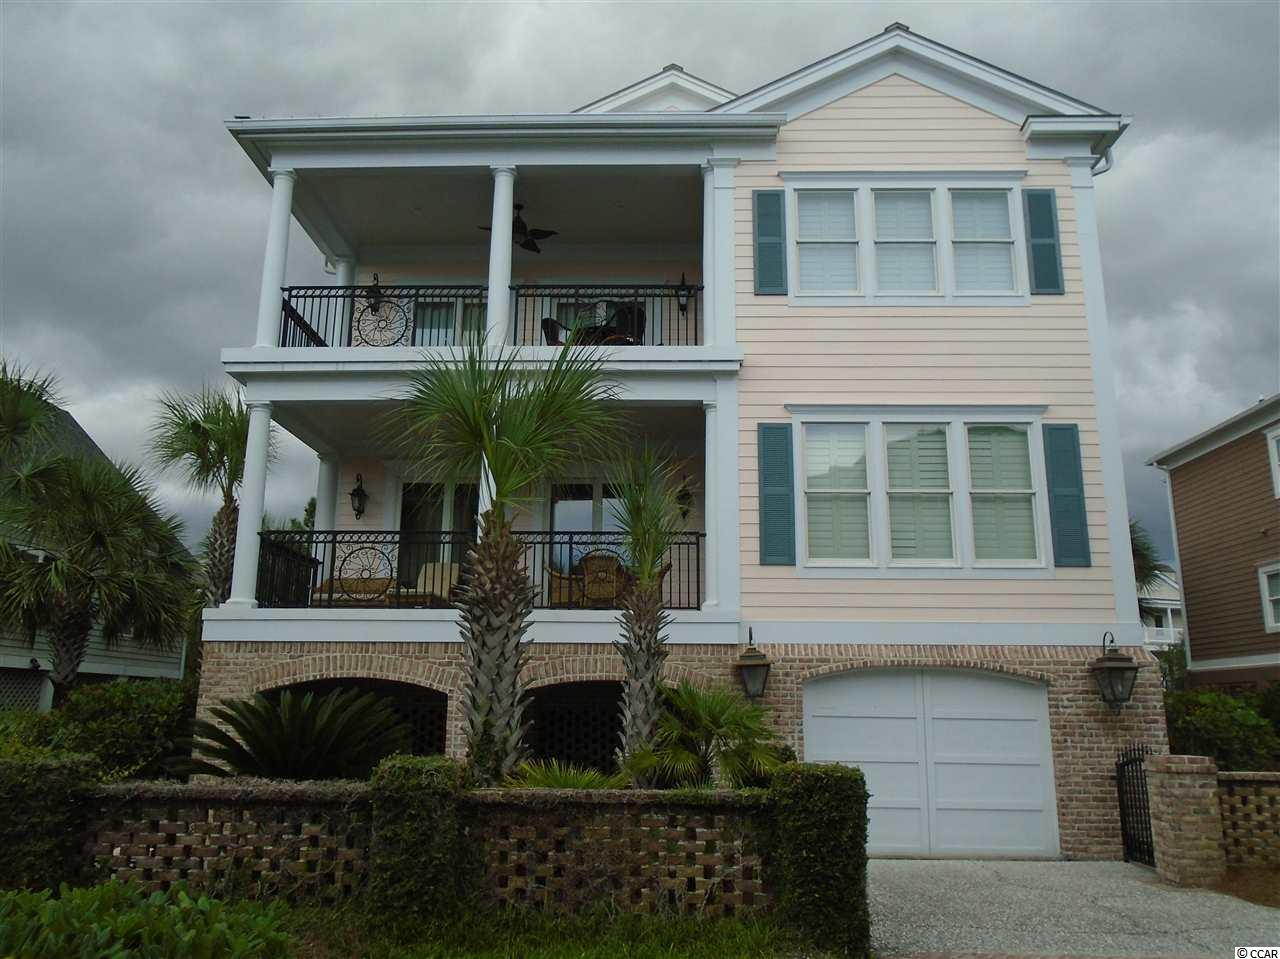 549 S Dunes Dr., Pawleys Island, South Carolina